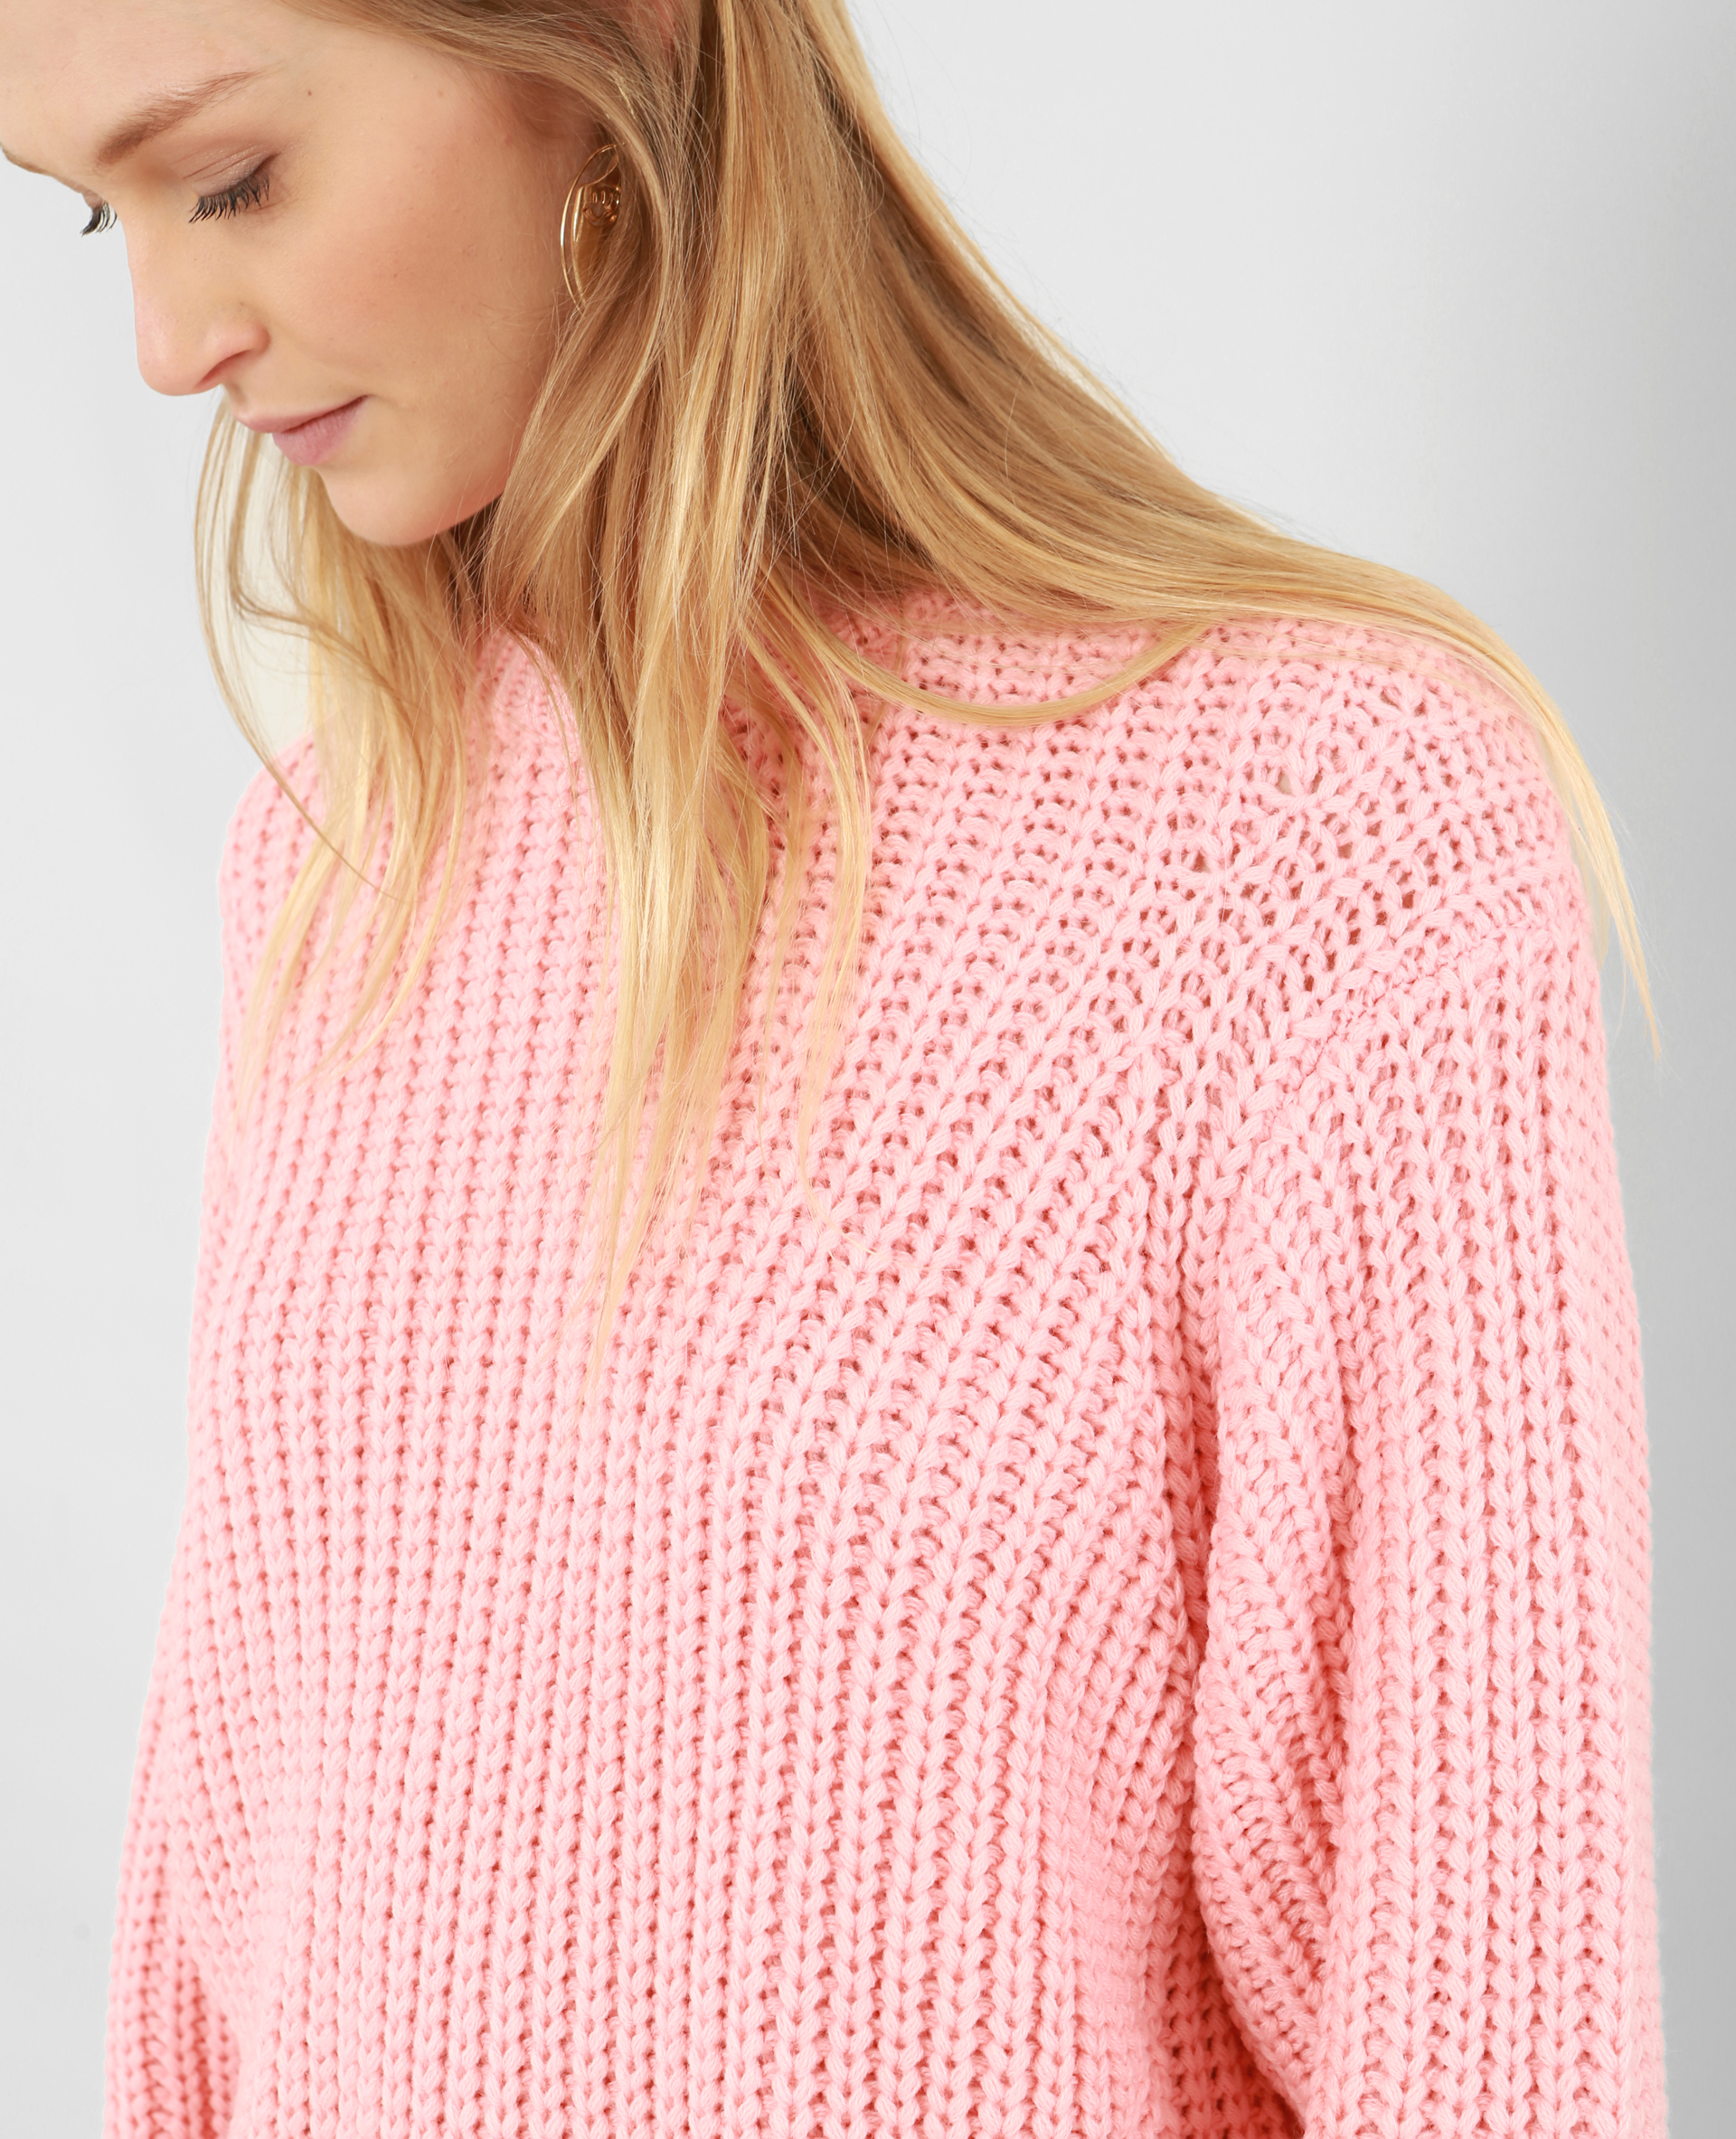 c7039fa65 Pull à grosse maille rouge - 403915300A02   Pimkie